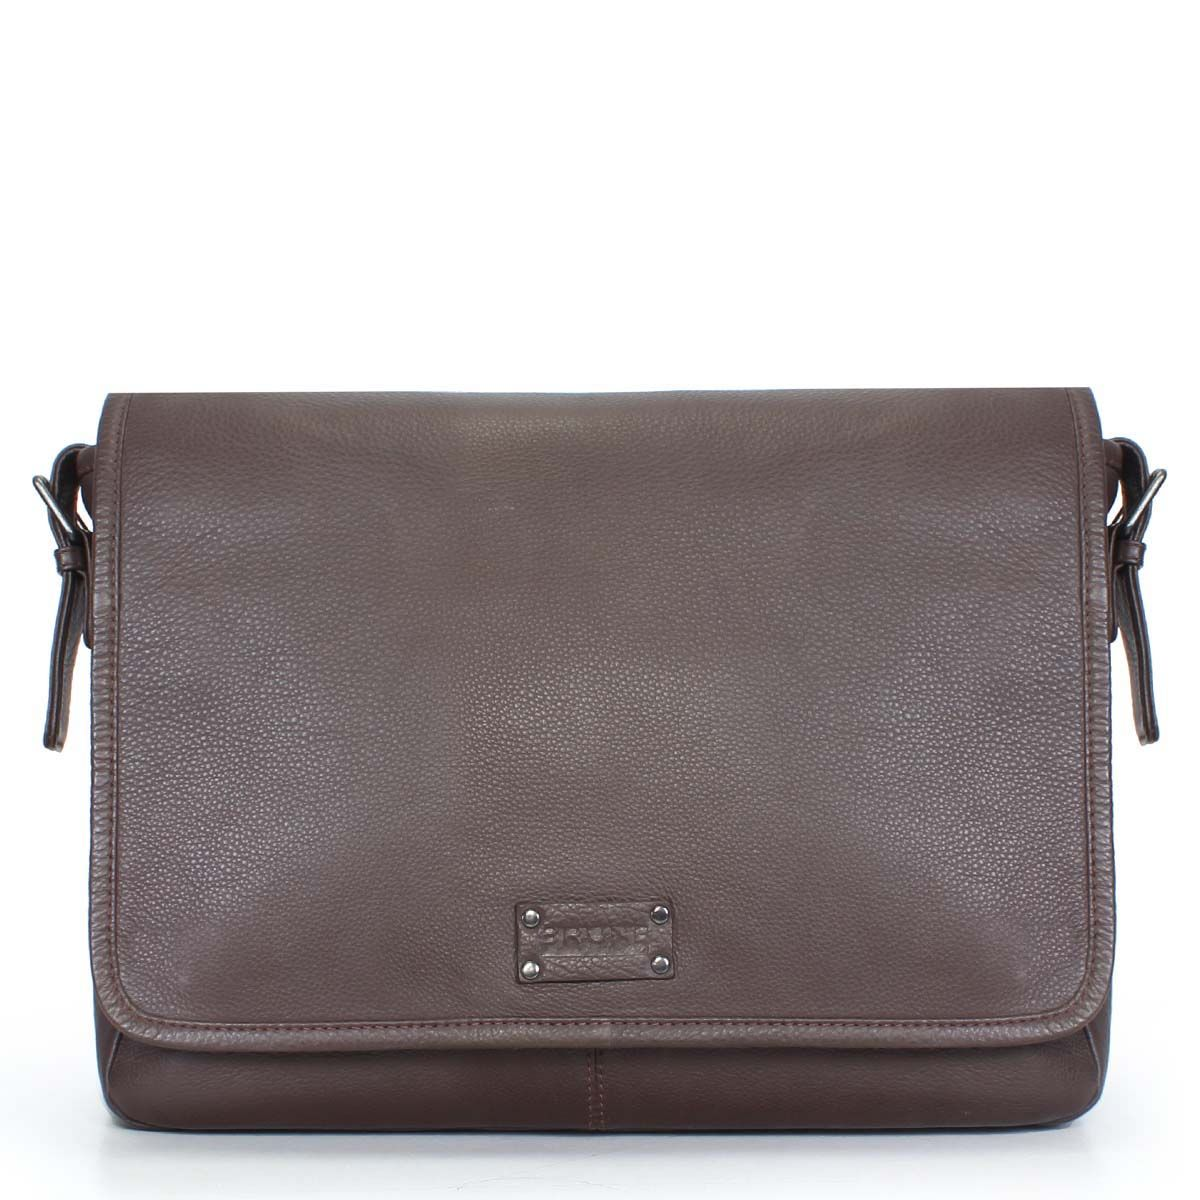 bffe3ba02346 Buy online  NEW BROWN MENS  LEATHER OFFICE  BAG online for sale    voganow.com for Rs.4